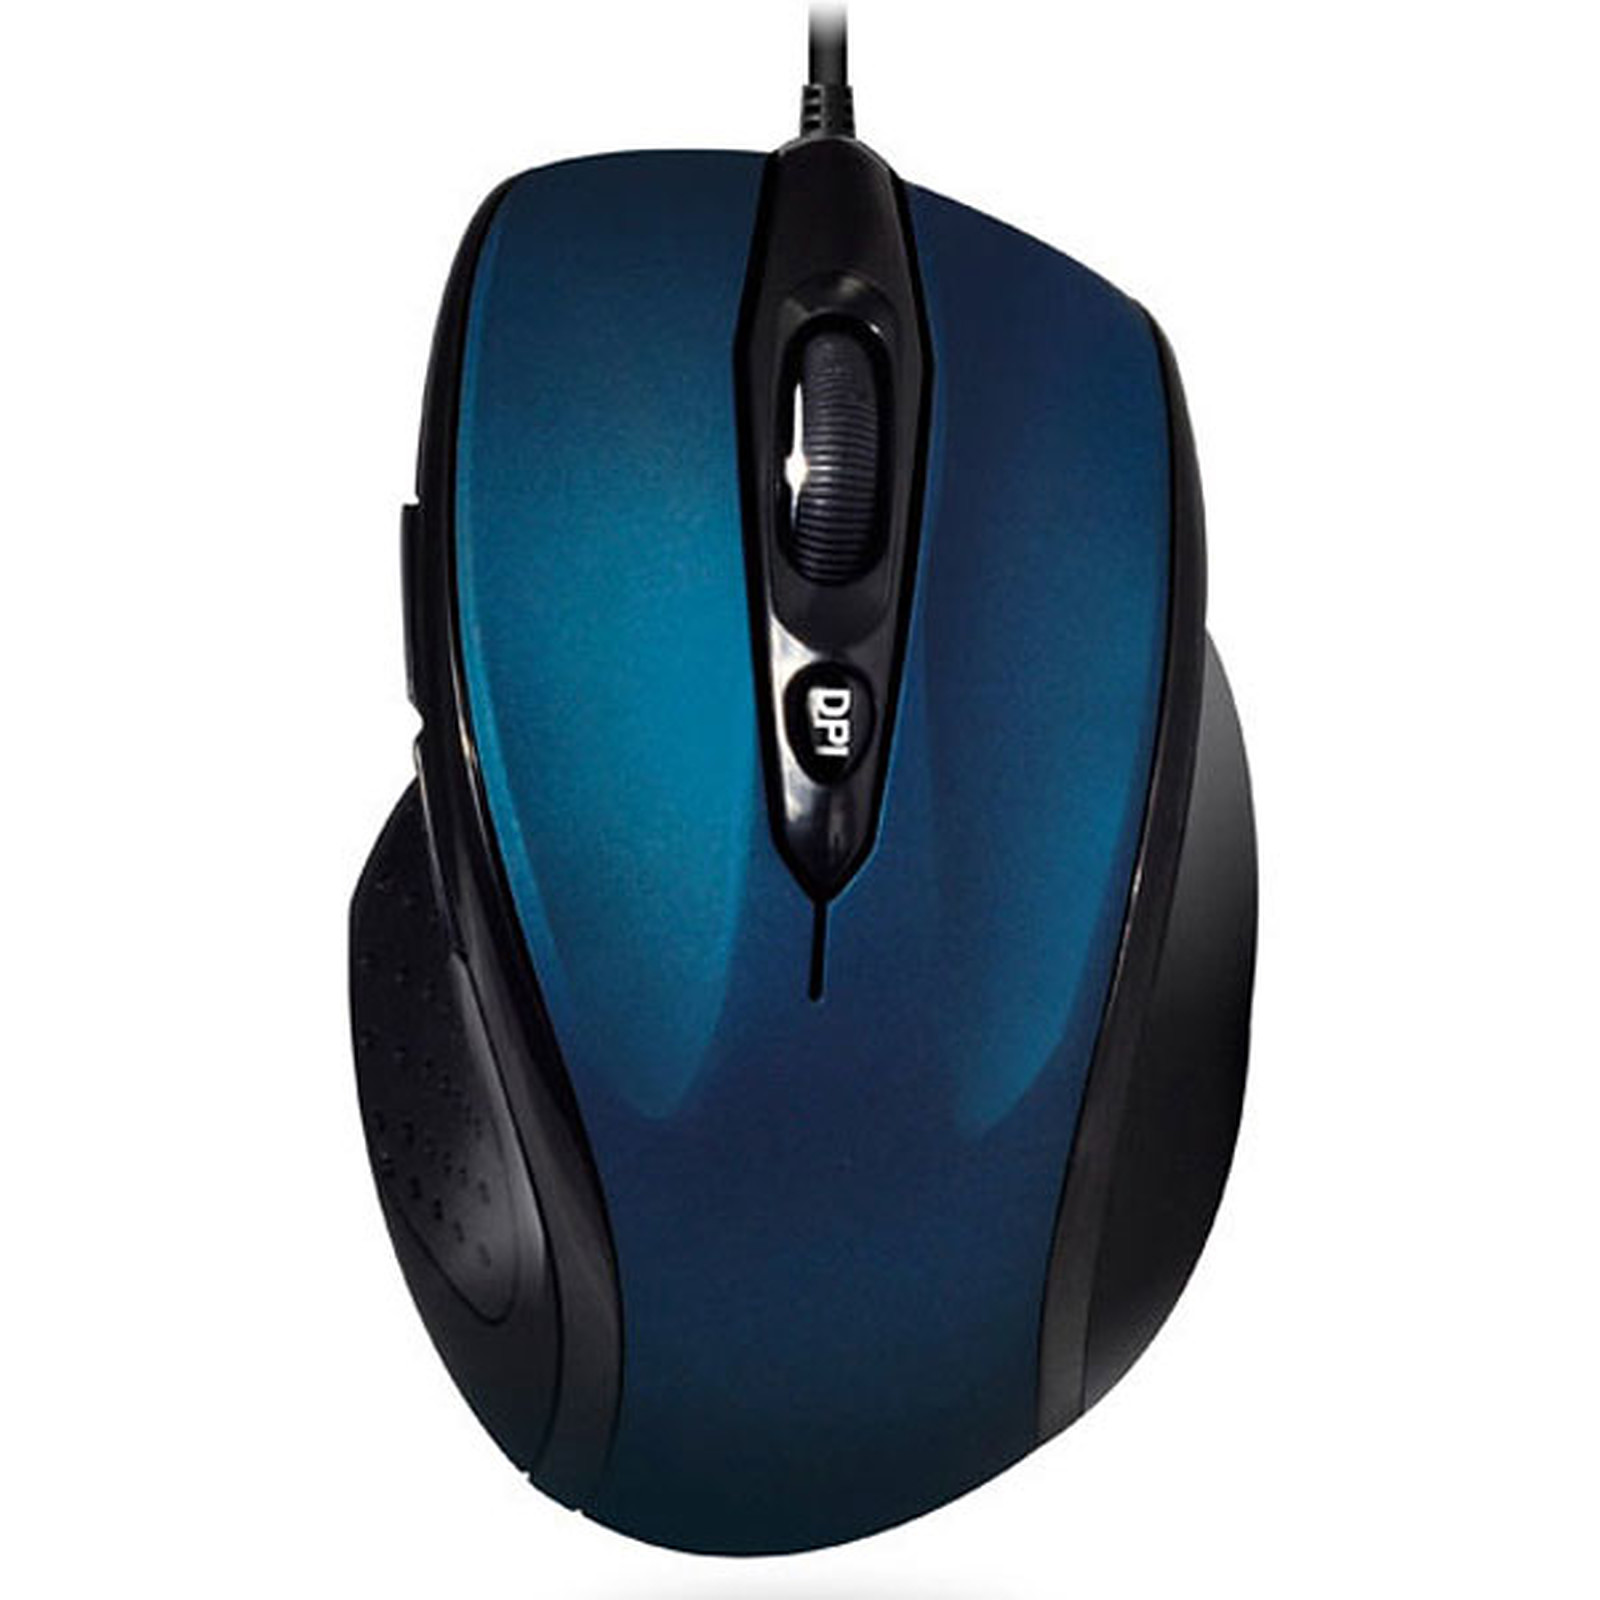 Advance Shape 6D Mouse (bleu)